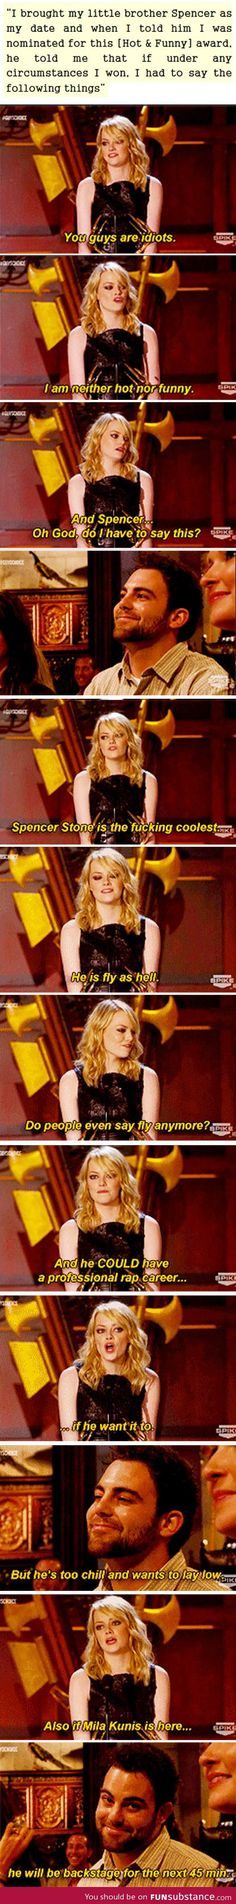 Emma Stone is the best sister ever. Love her